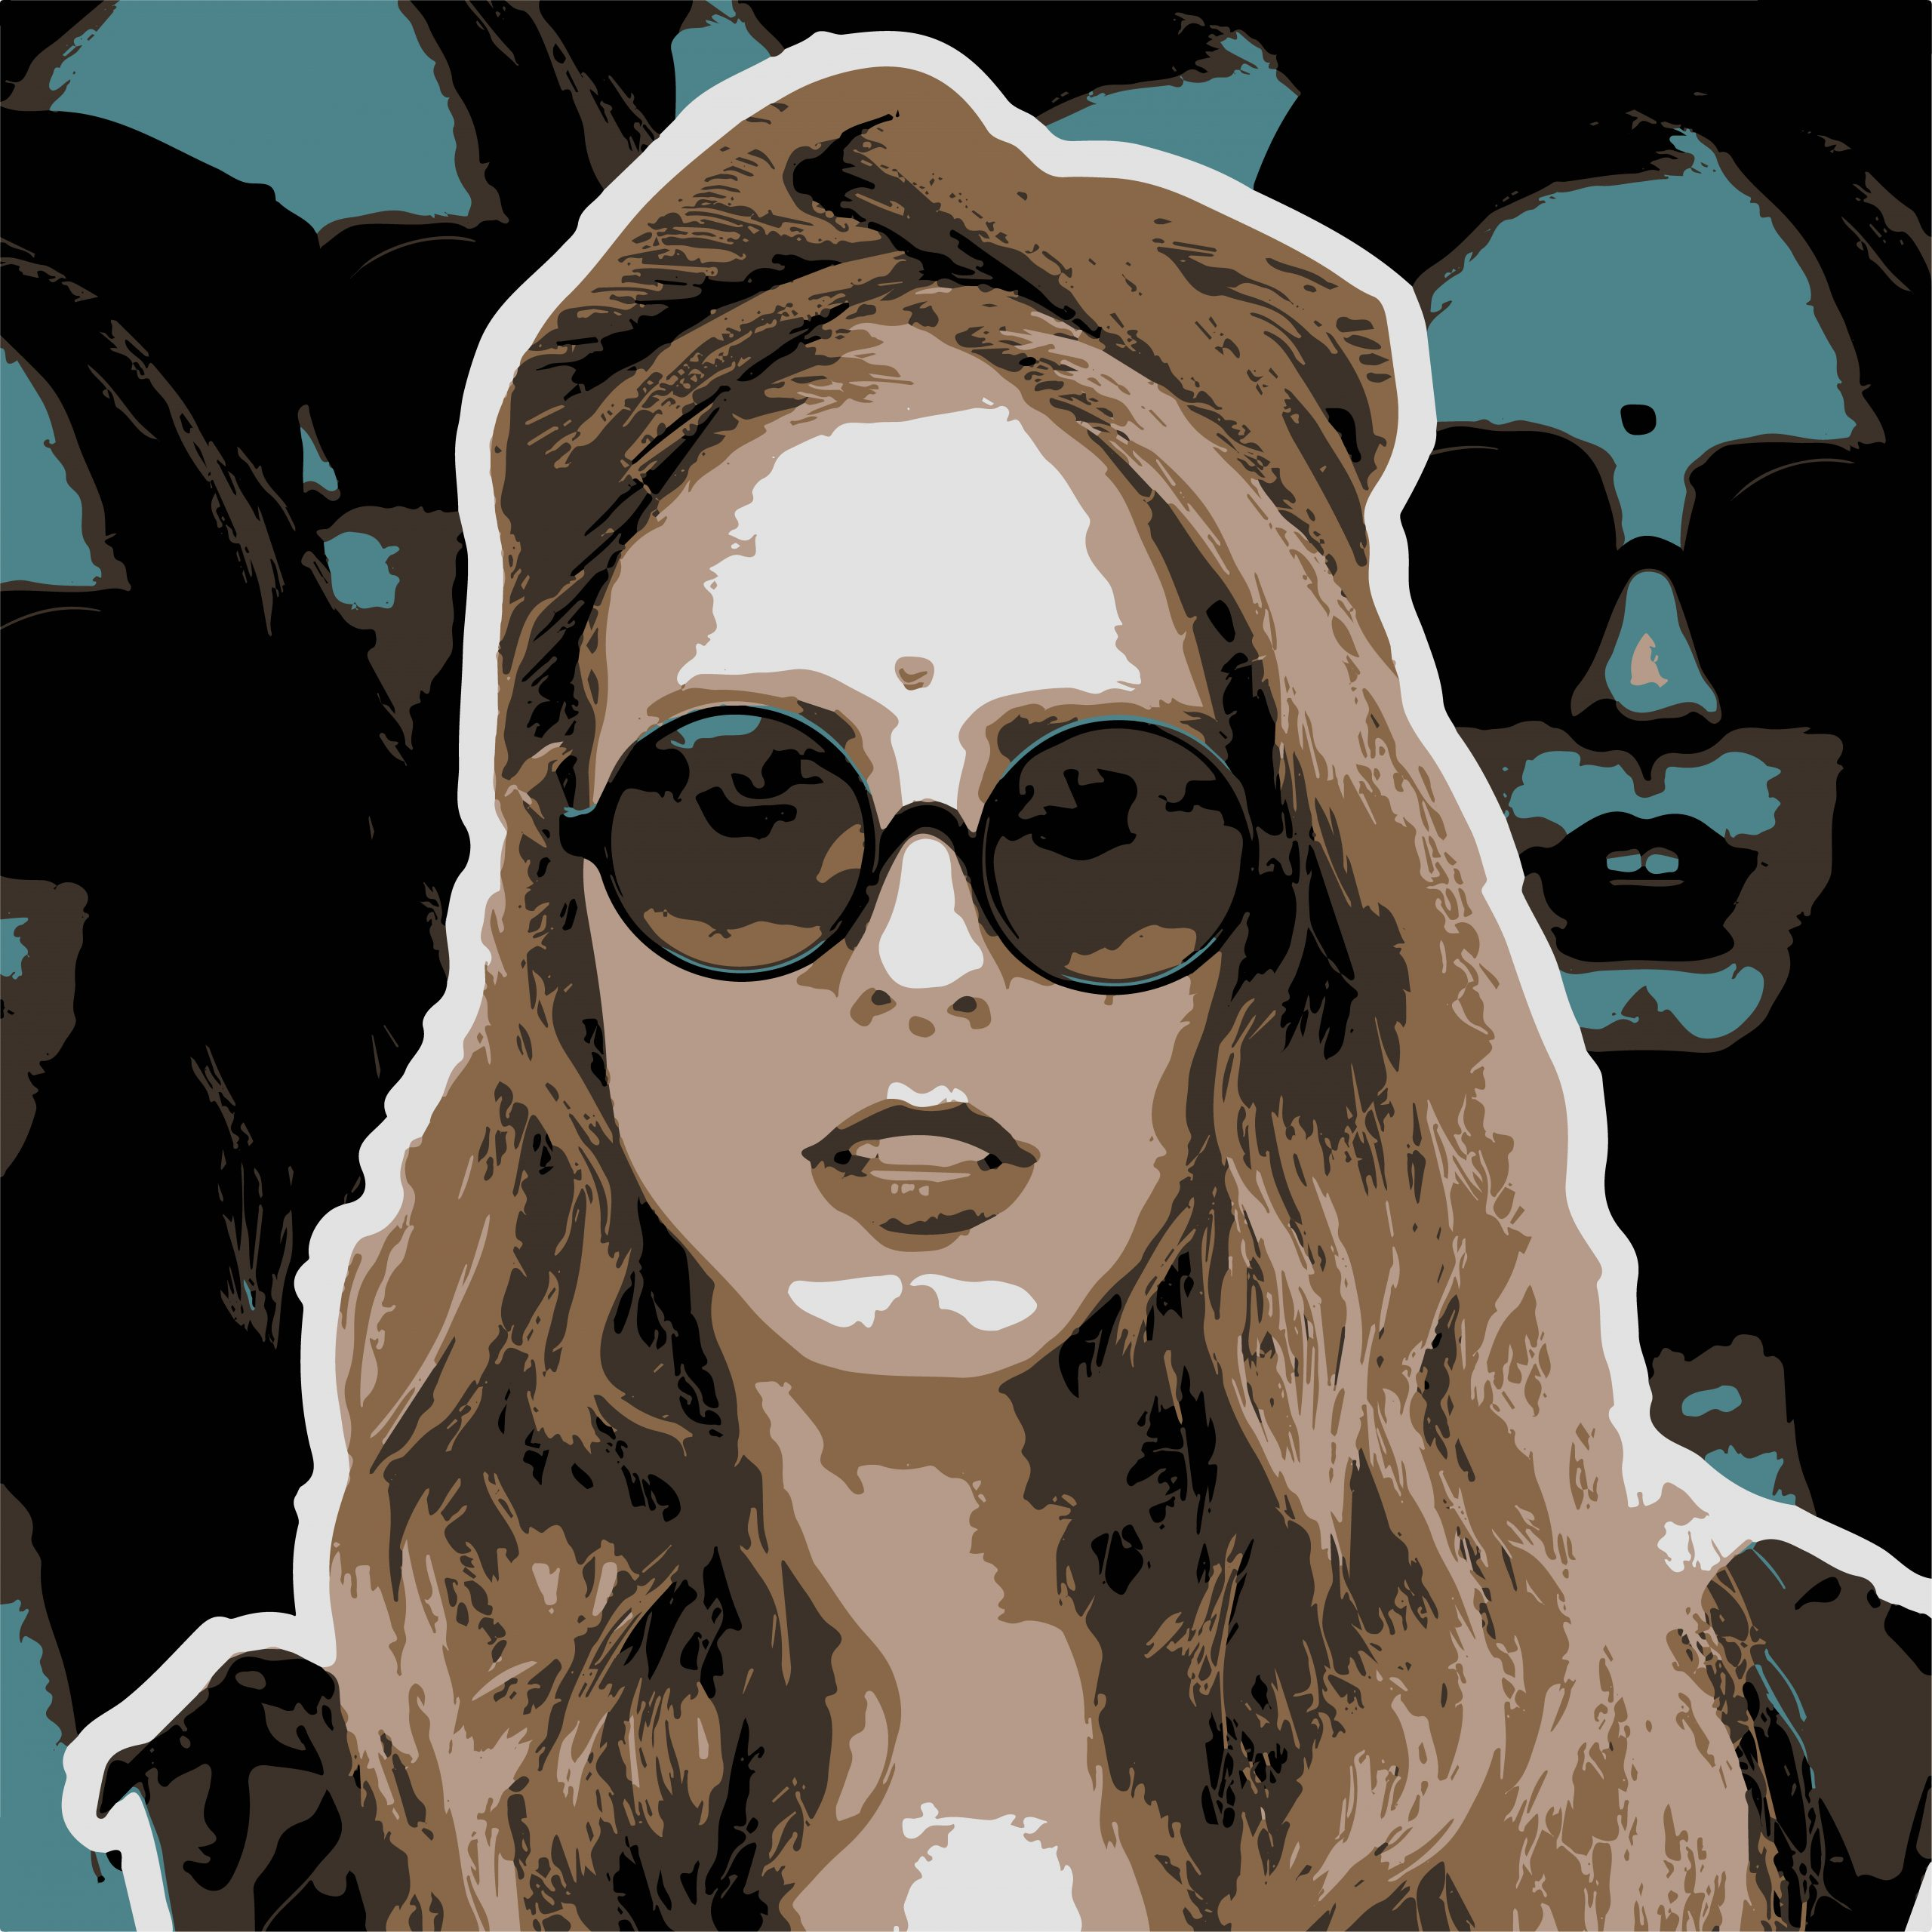 PORTRAIT ILLUSTRATION of girl with sunglasses